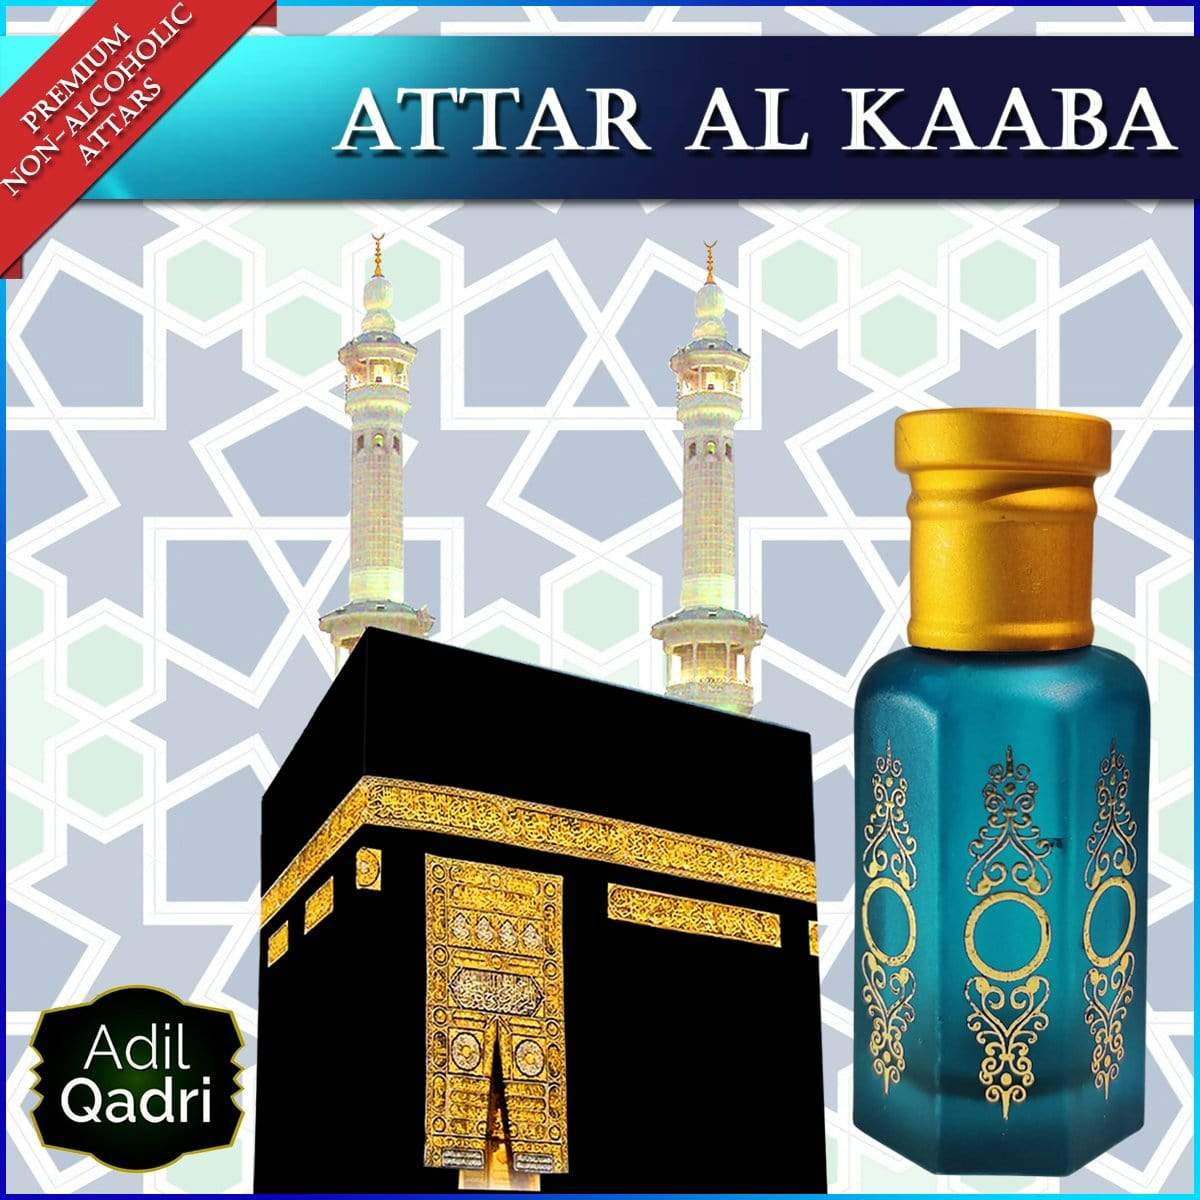 Adilqadri ATTAR AL KAABA Premium Quality Synthetic Attar